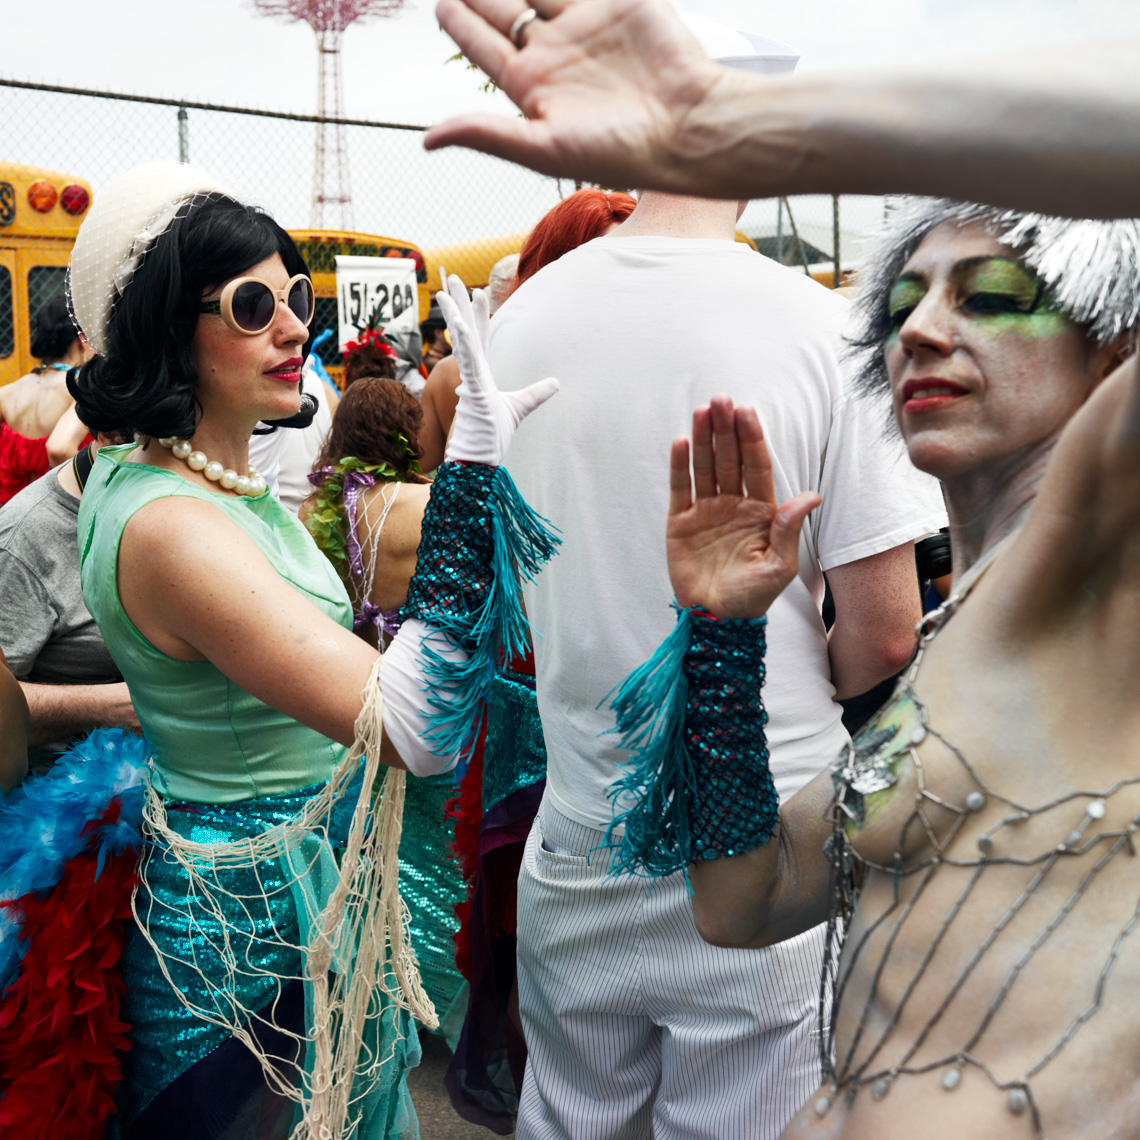 Mermaid Parade 061811-522